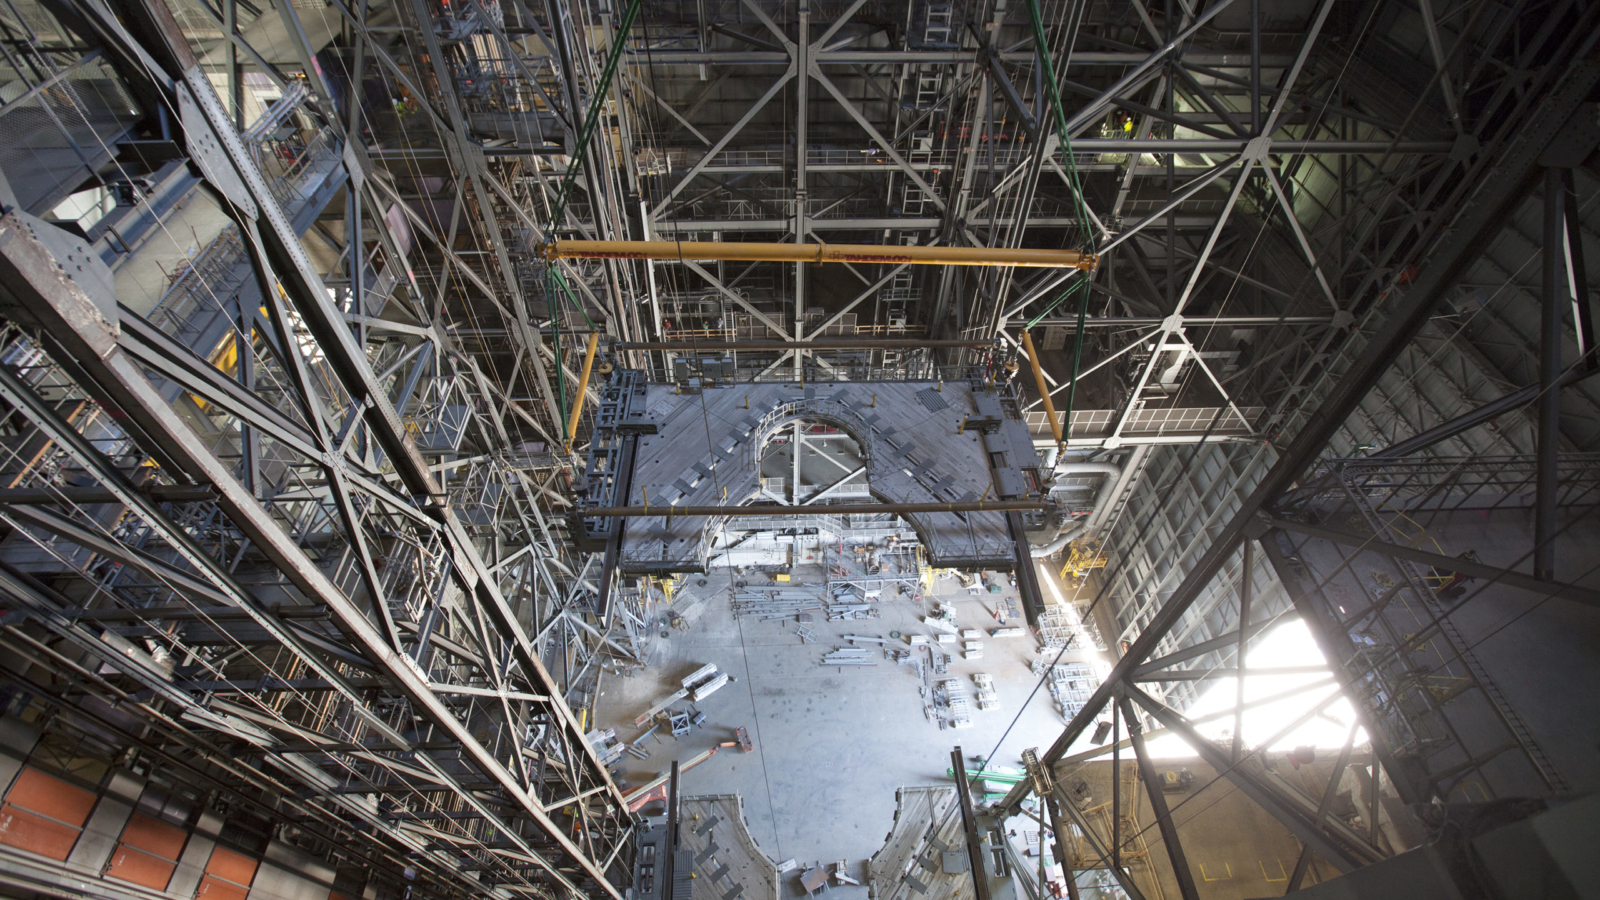 Photos of Platform K(2) being lifted and installed into Highbay 3 inside the VAB.